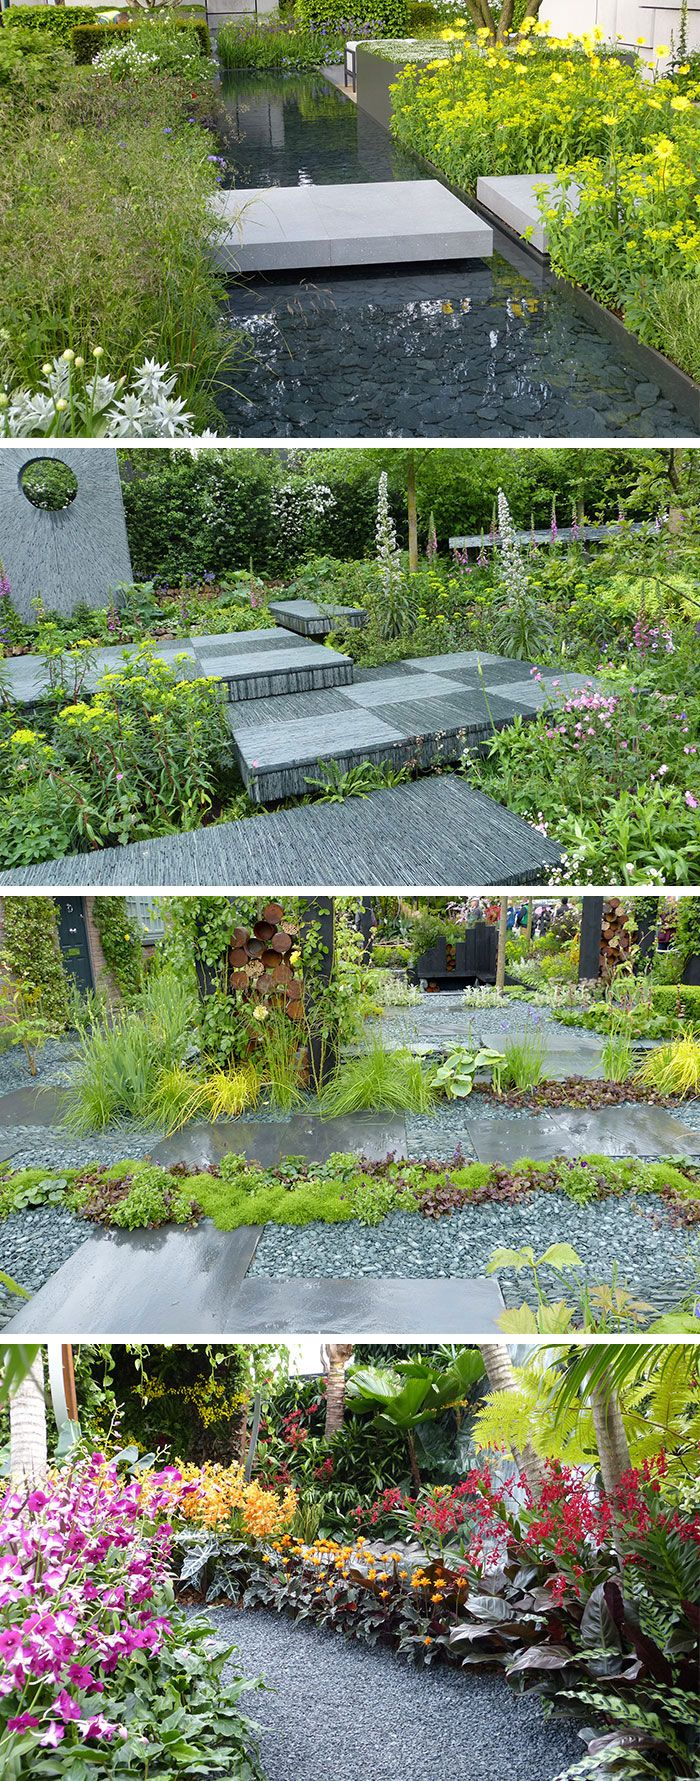 Garden Design Trends 2015 279 best chelsea flower show.photos and plans images on